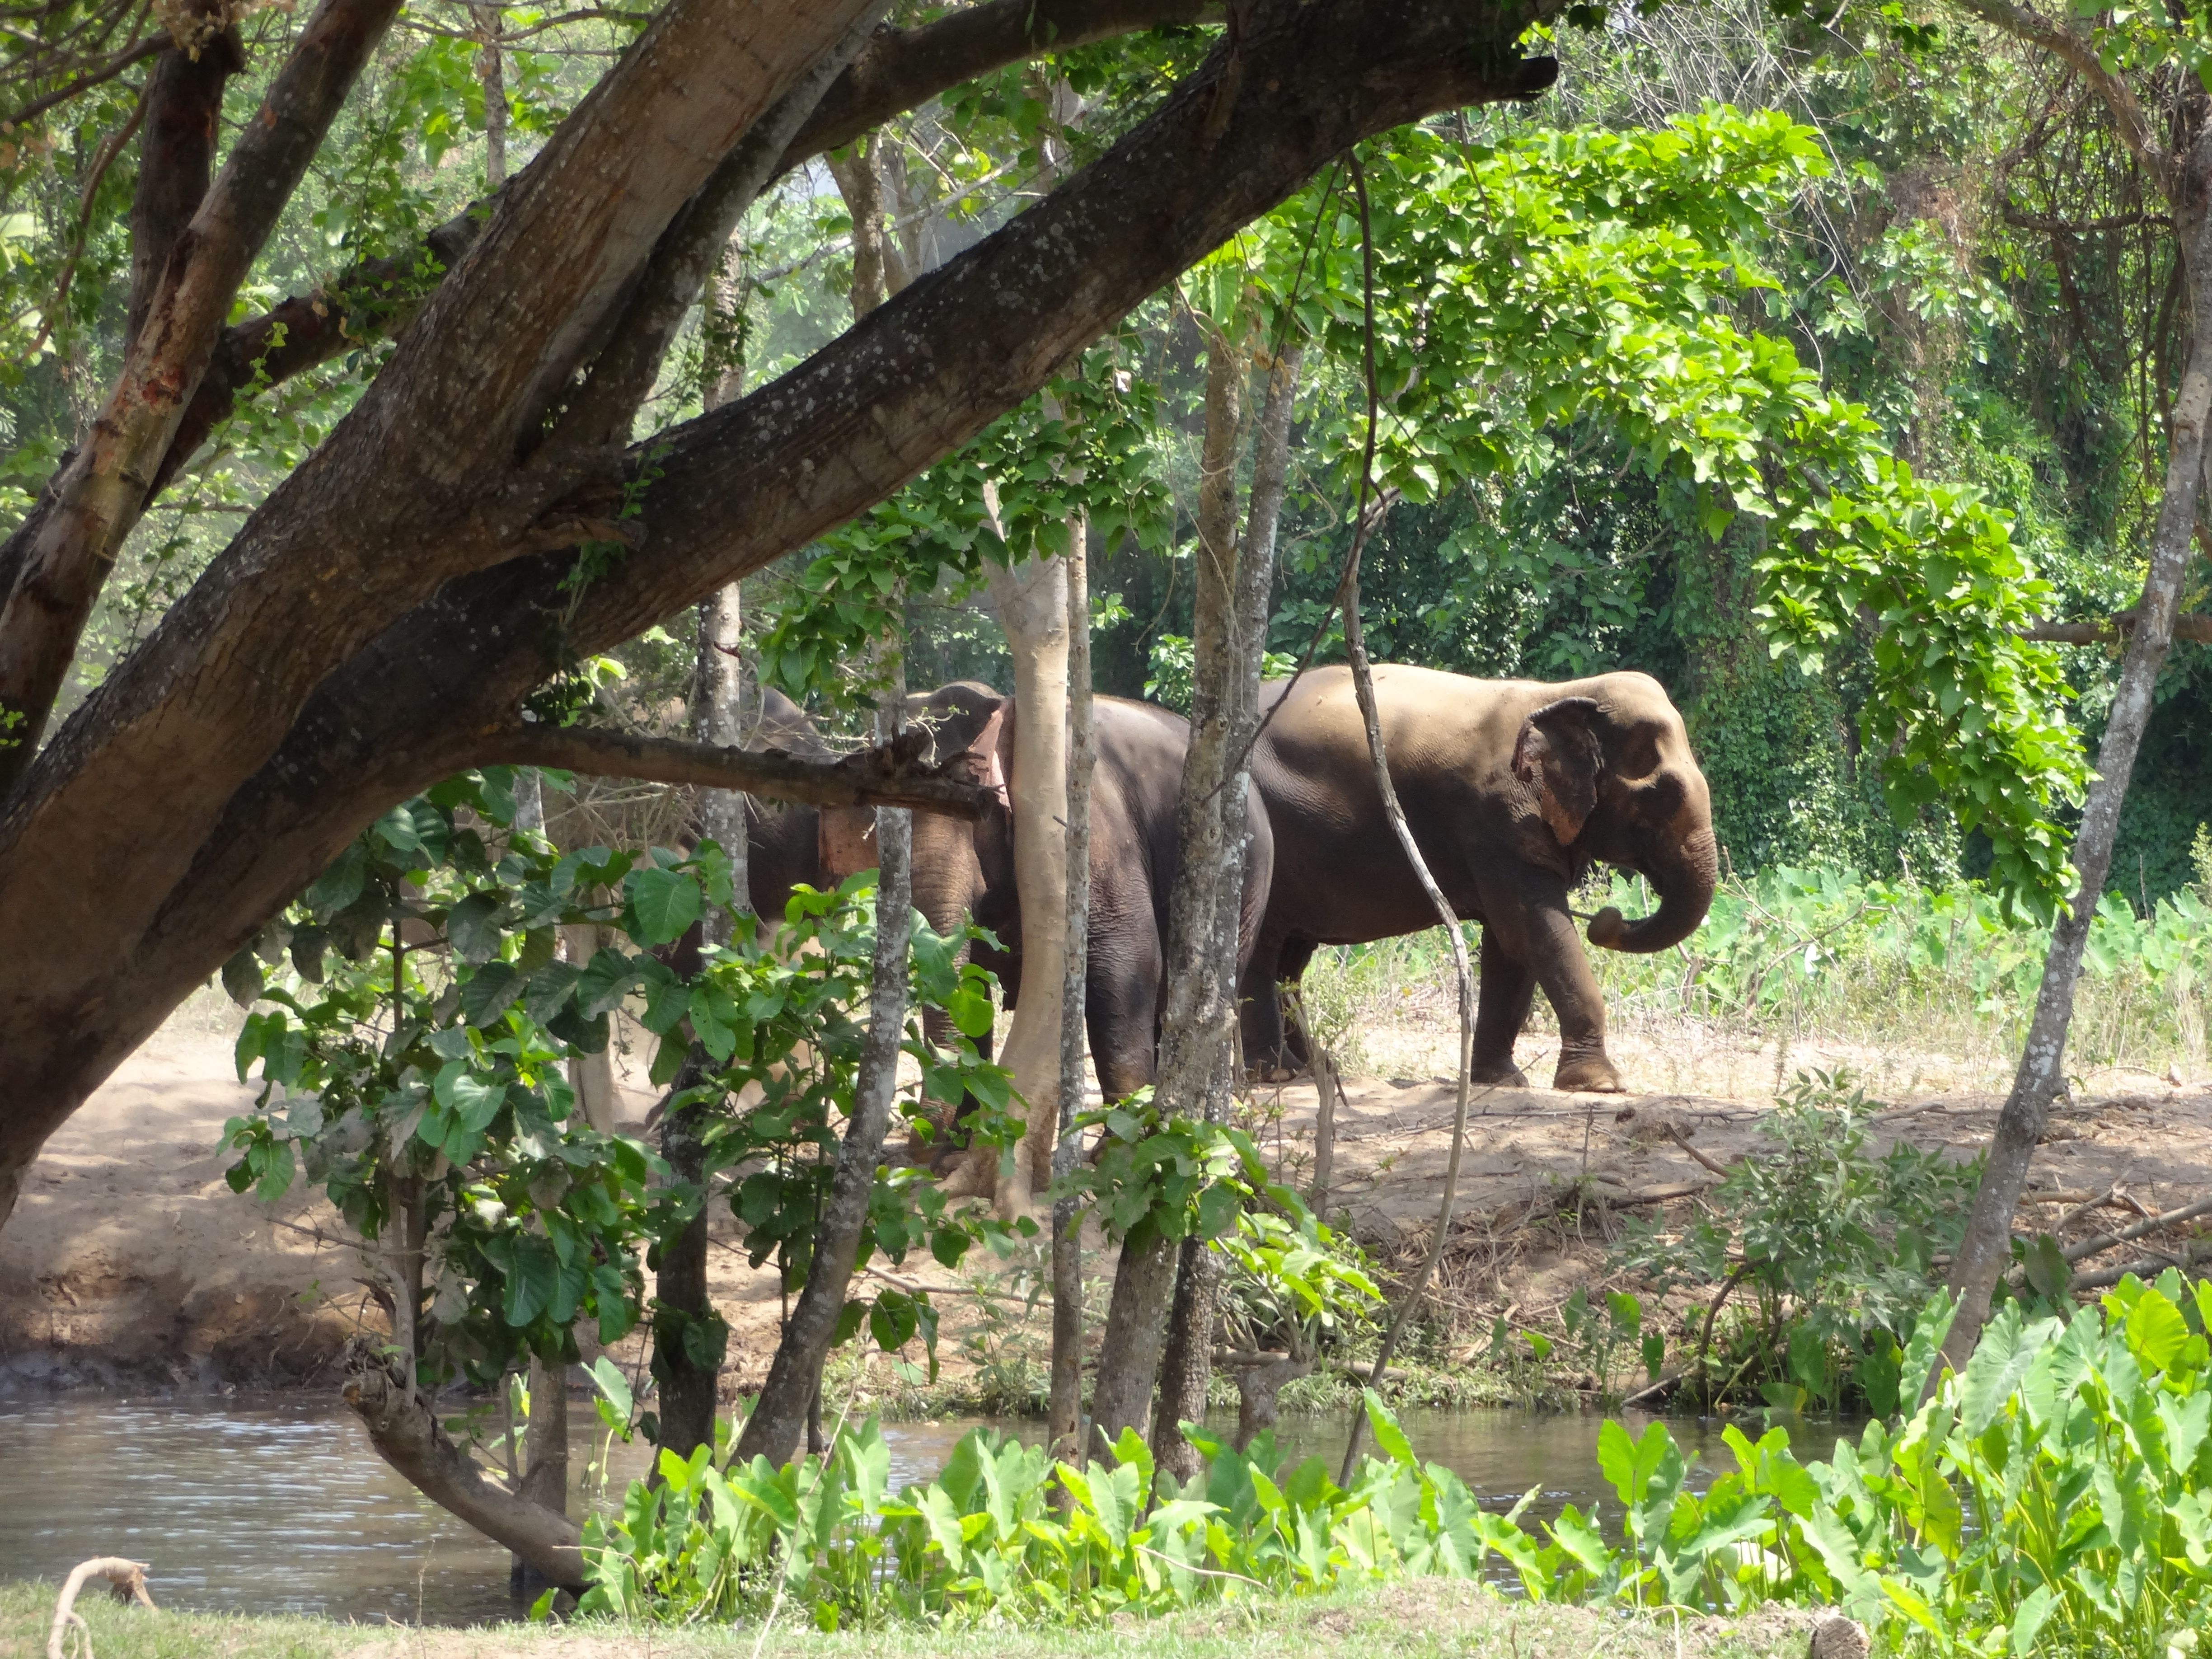 Elephant's World sanctuary! A wonderful place to visit during a trip with Volunteer Voyages!